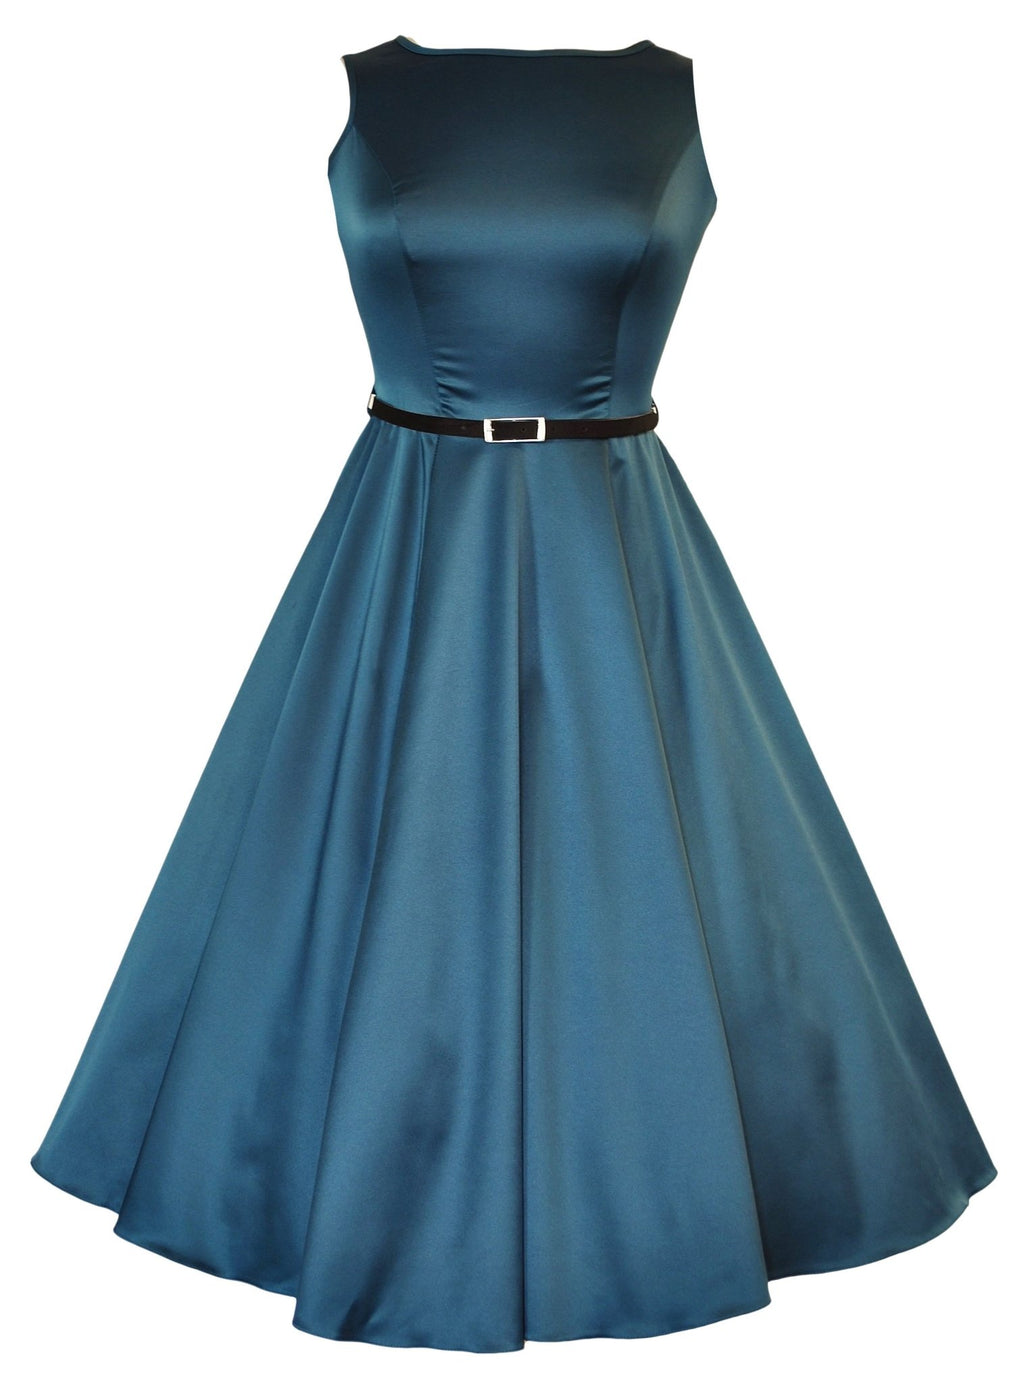 Turquoise Audrey Style Dress with Black Slim Belt - Rockamilly-Dresses-Vintage